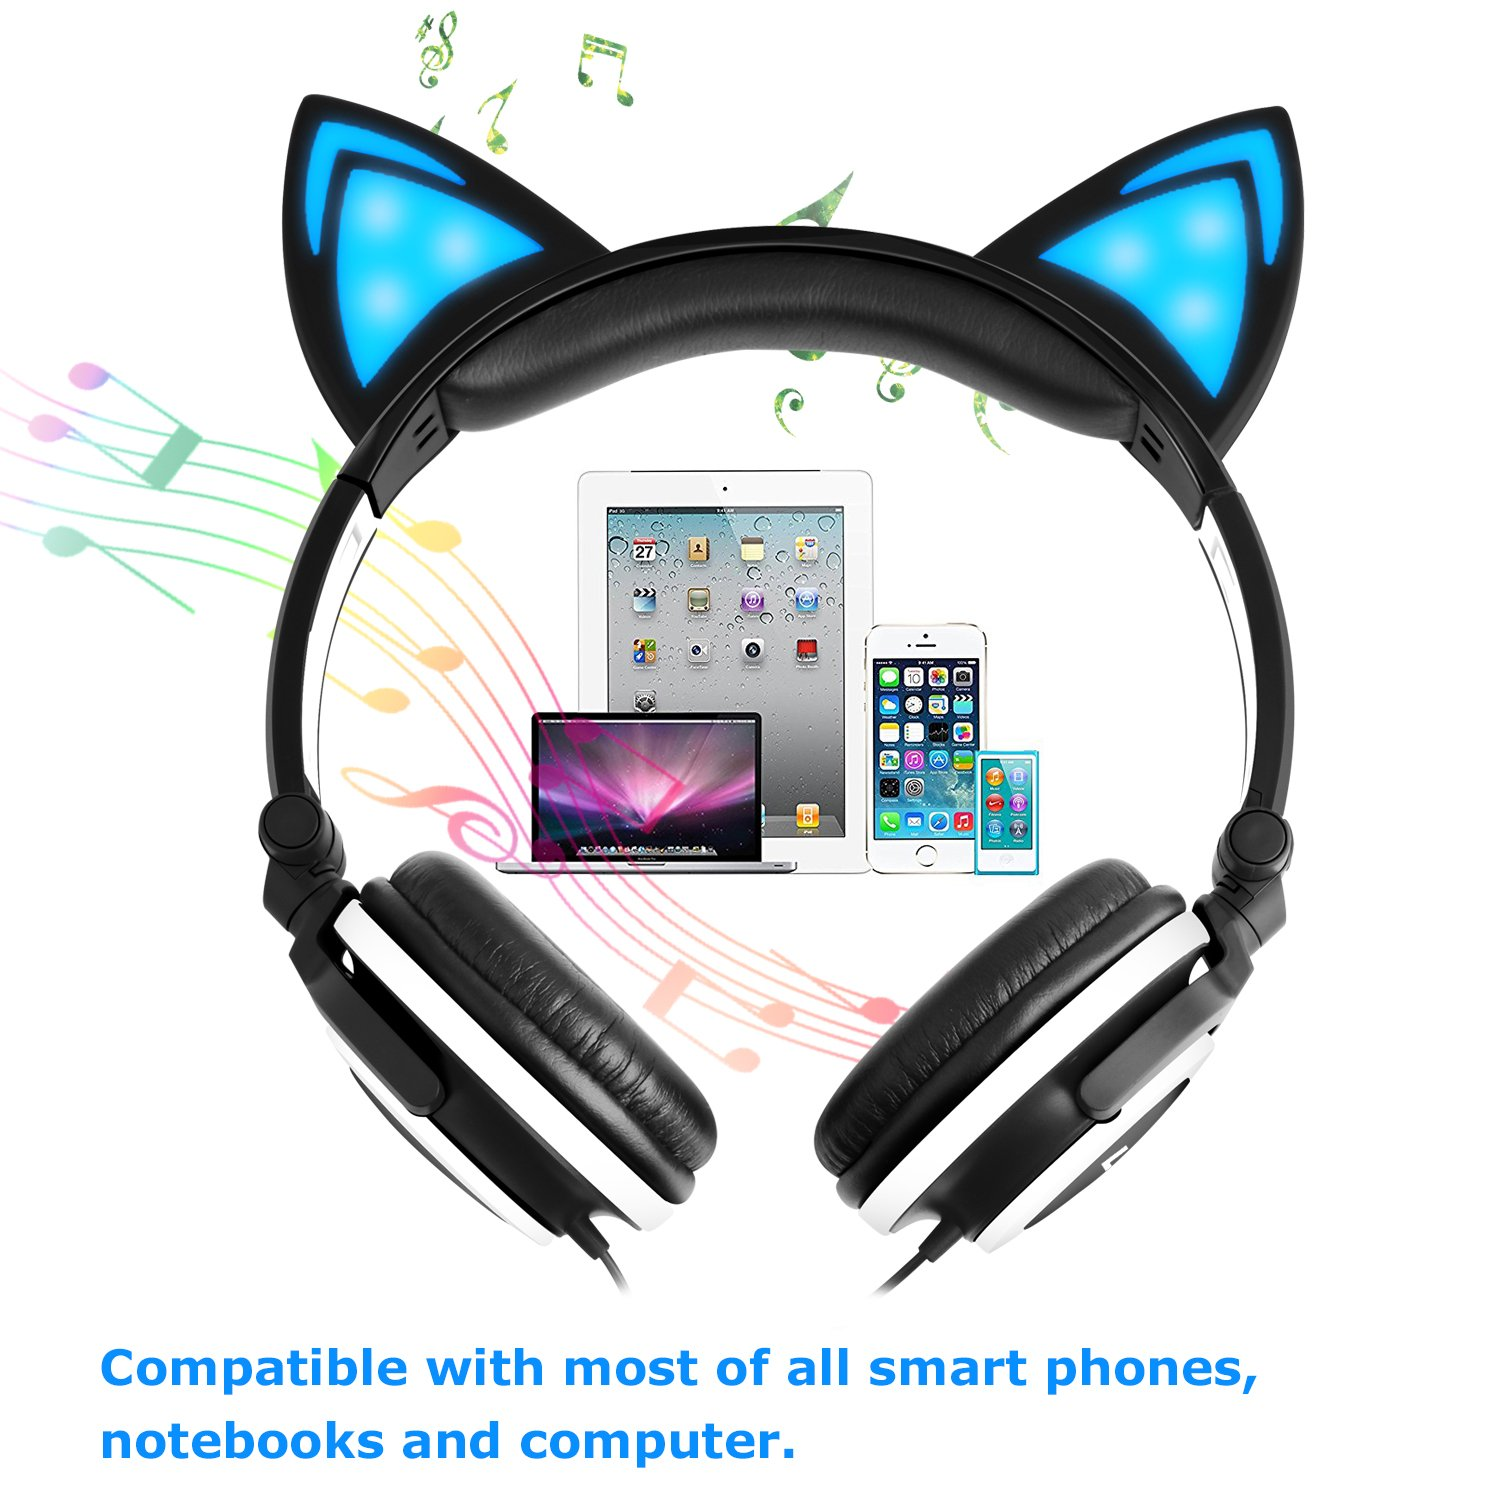 Cat Ear Headphone,LOBKIN Foldable Wired Over Ear Kids Headphone with Glowing Light for Girls Children Cosplay Fans,Compatible for iPhone,Android Phone (Black)